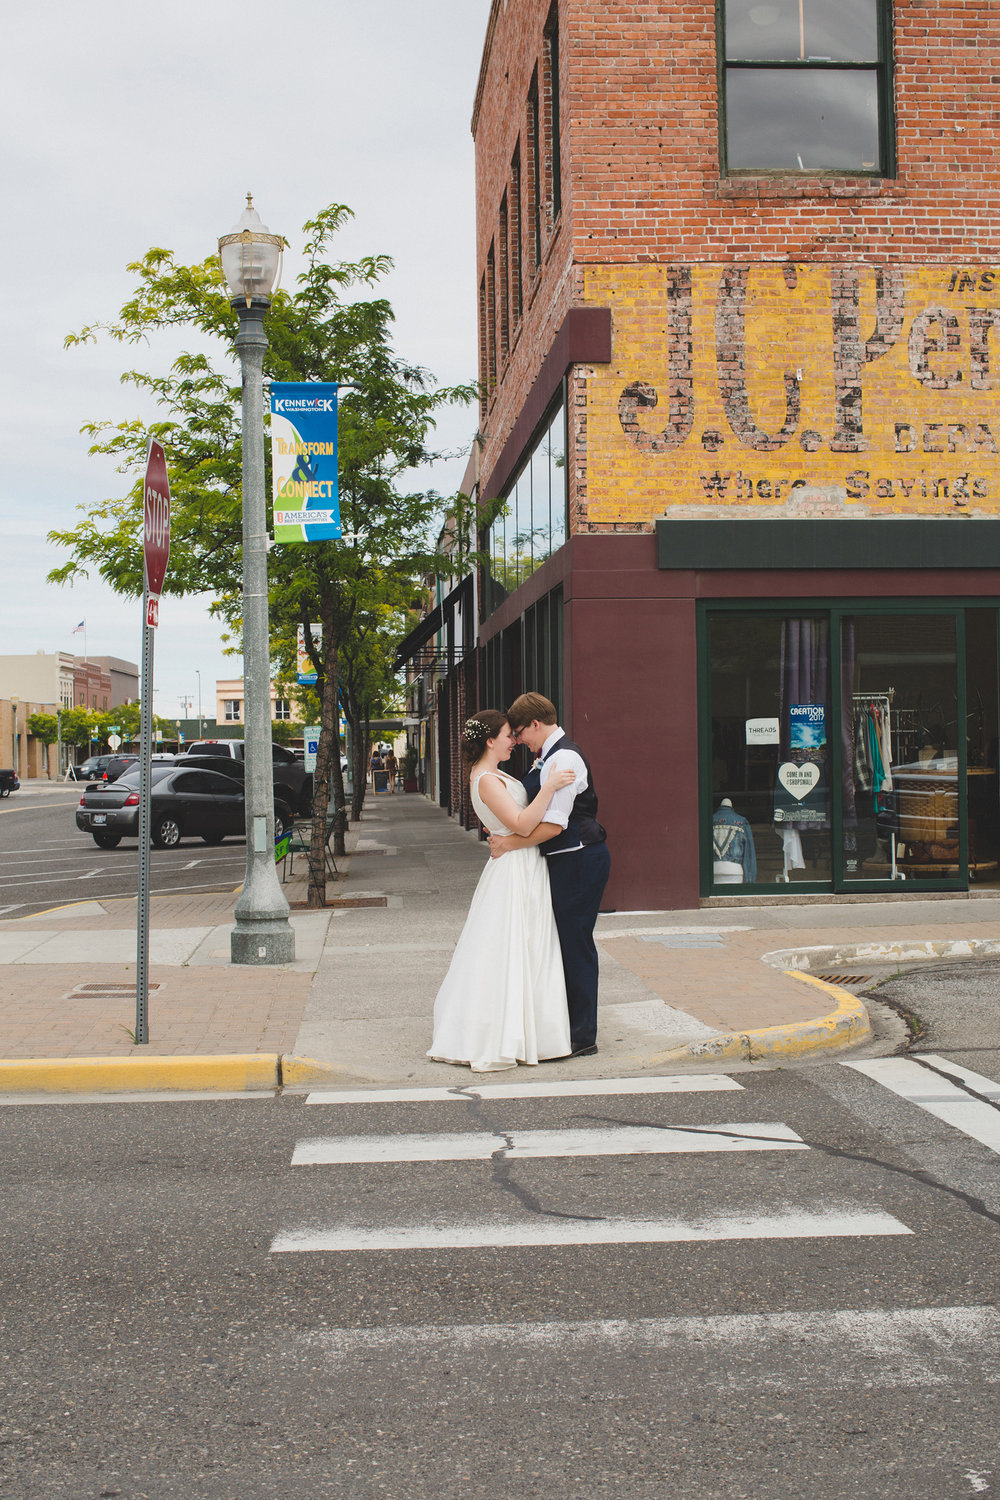 Tri Cities Wedding Photographer_Karis and Adrienne_Church wedding_ Downtown Kennewick 9_Old JC Pennys building